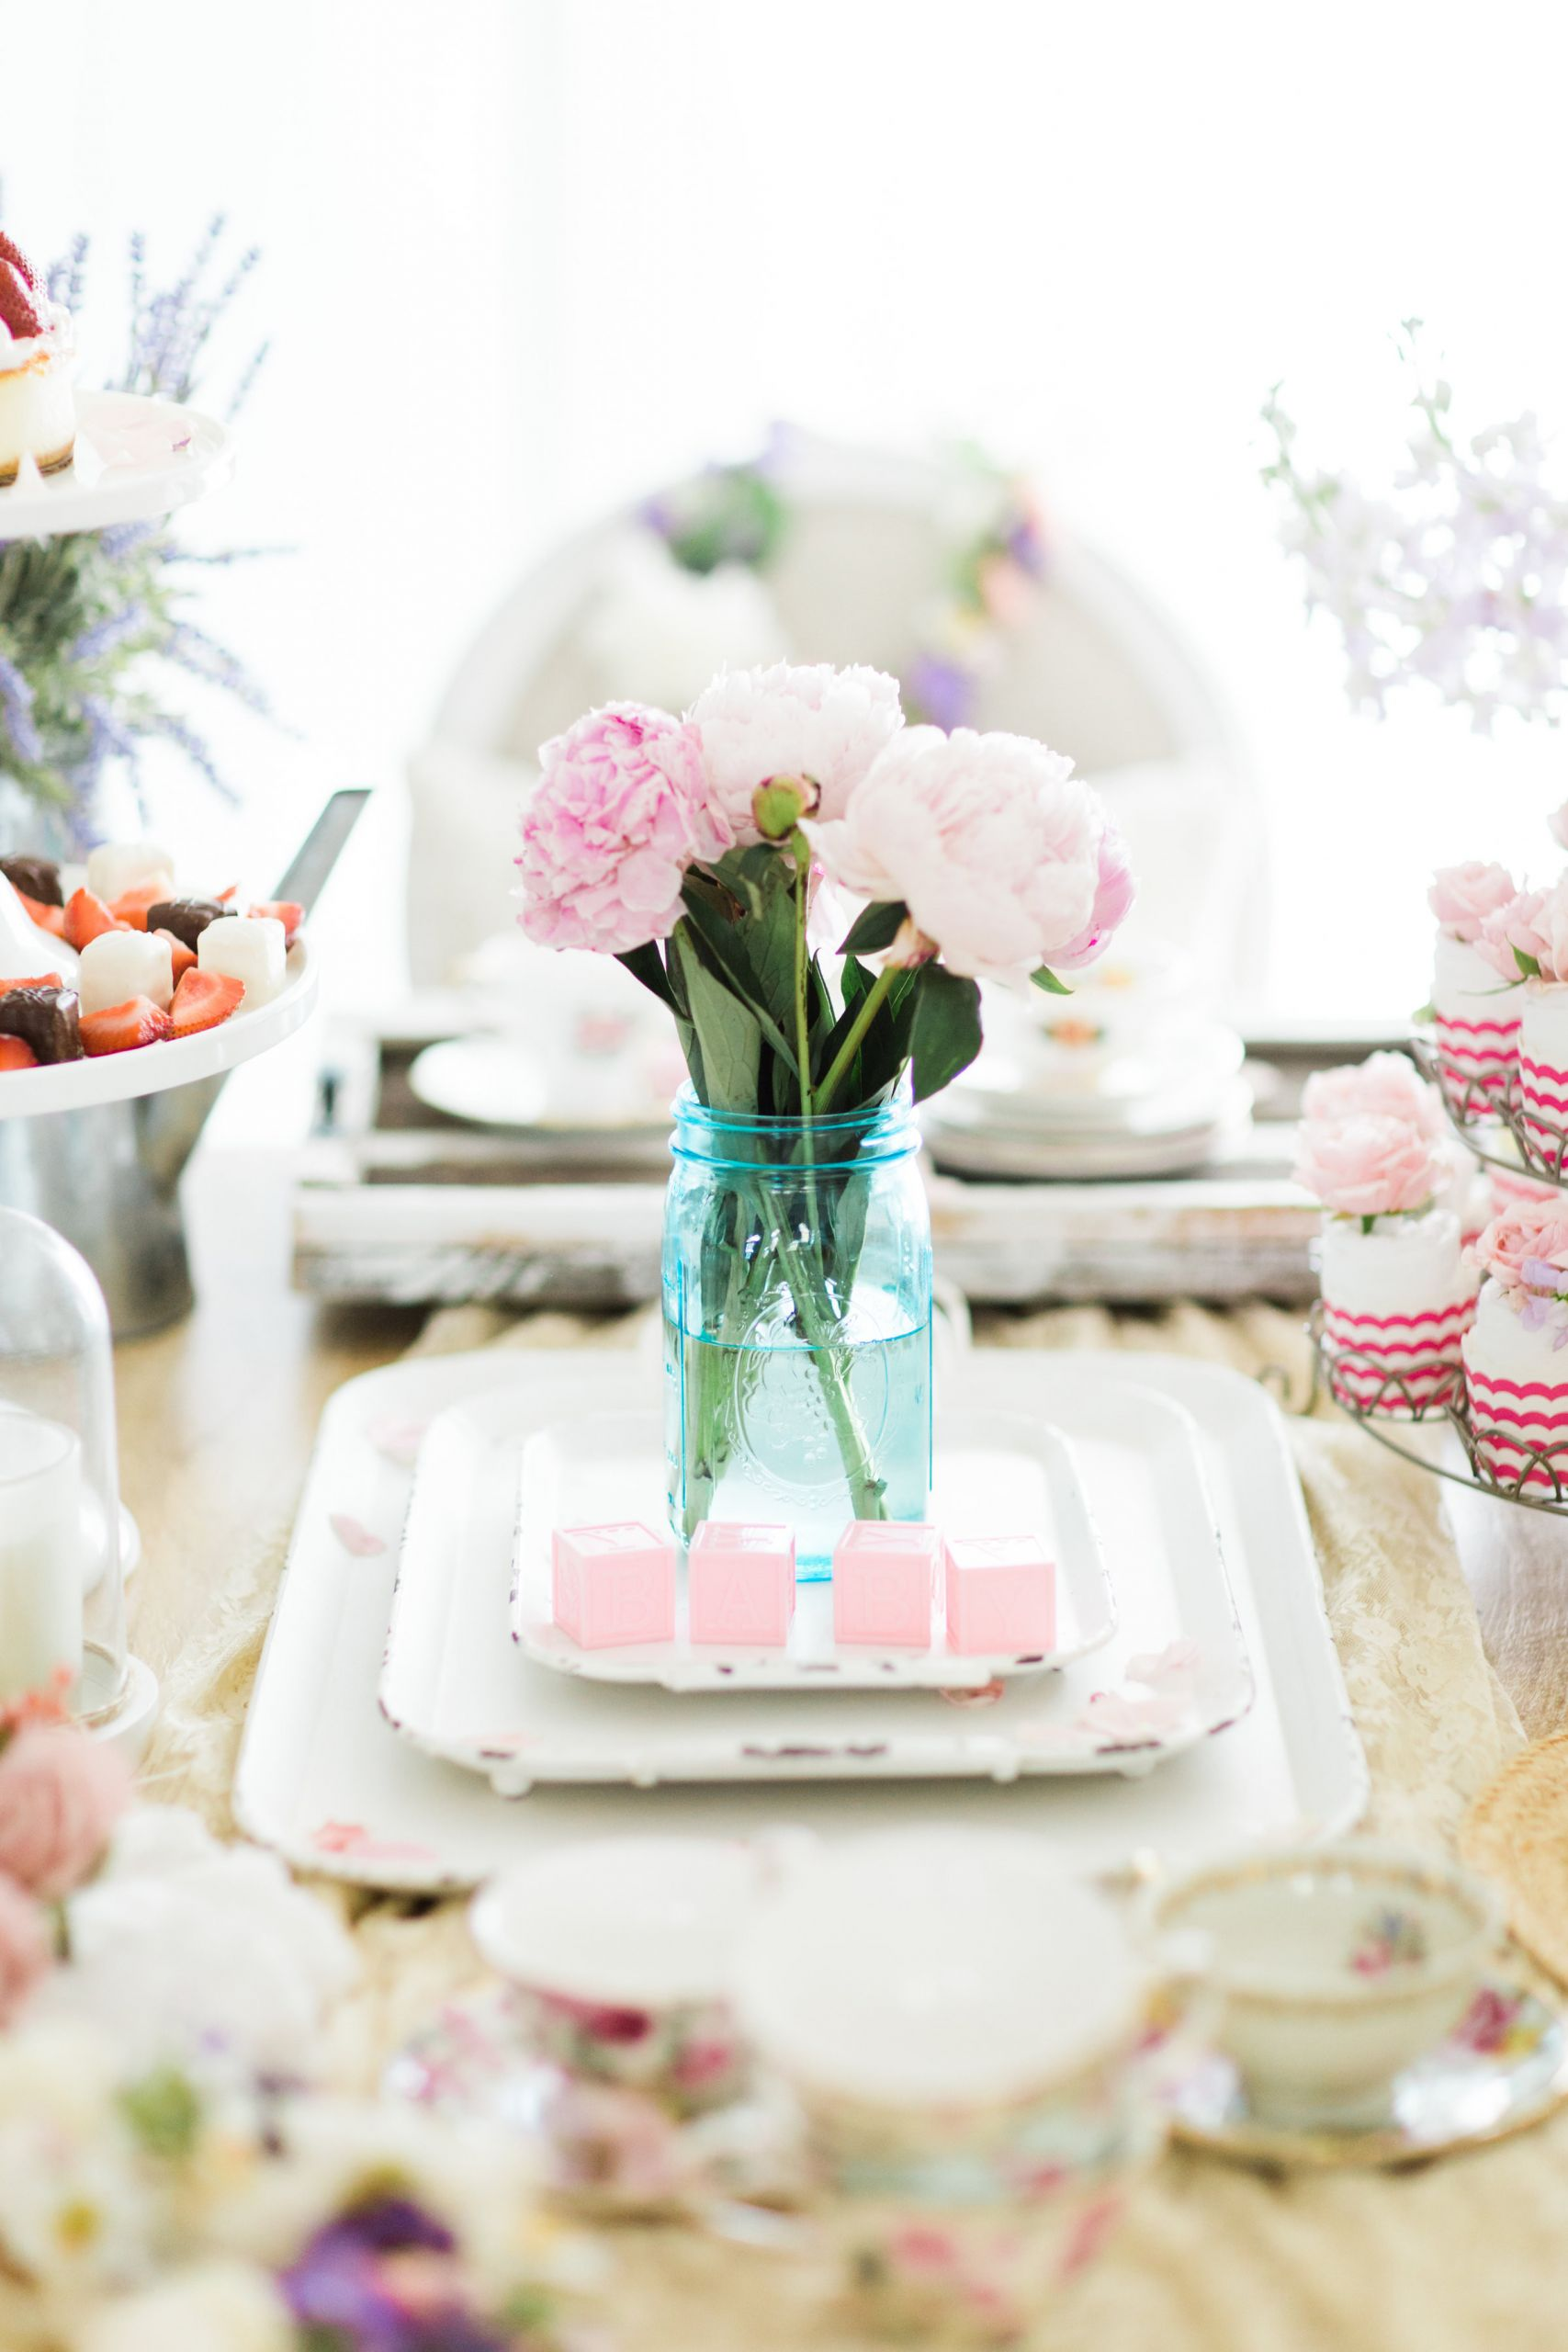 Tea Party Baby Shower Games  How to Throw a Tea Party Baby Shower in 6 Easy Steps